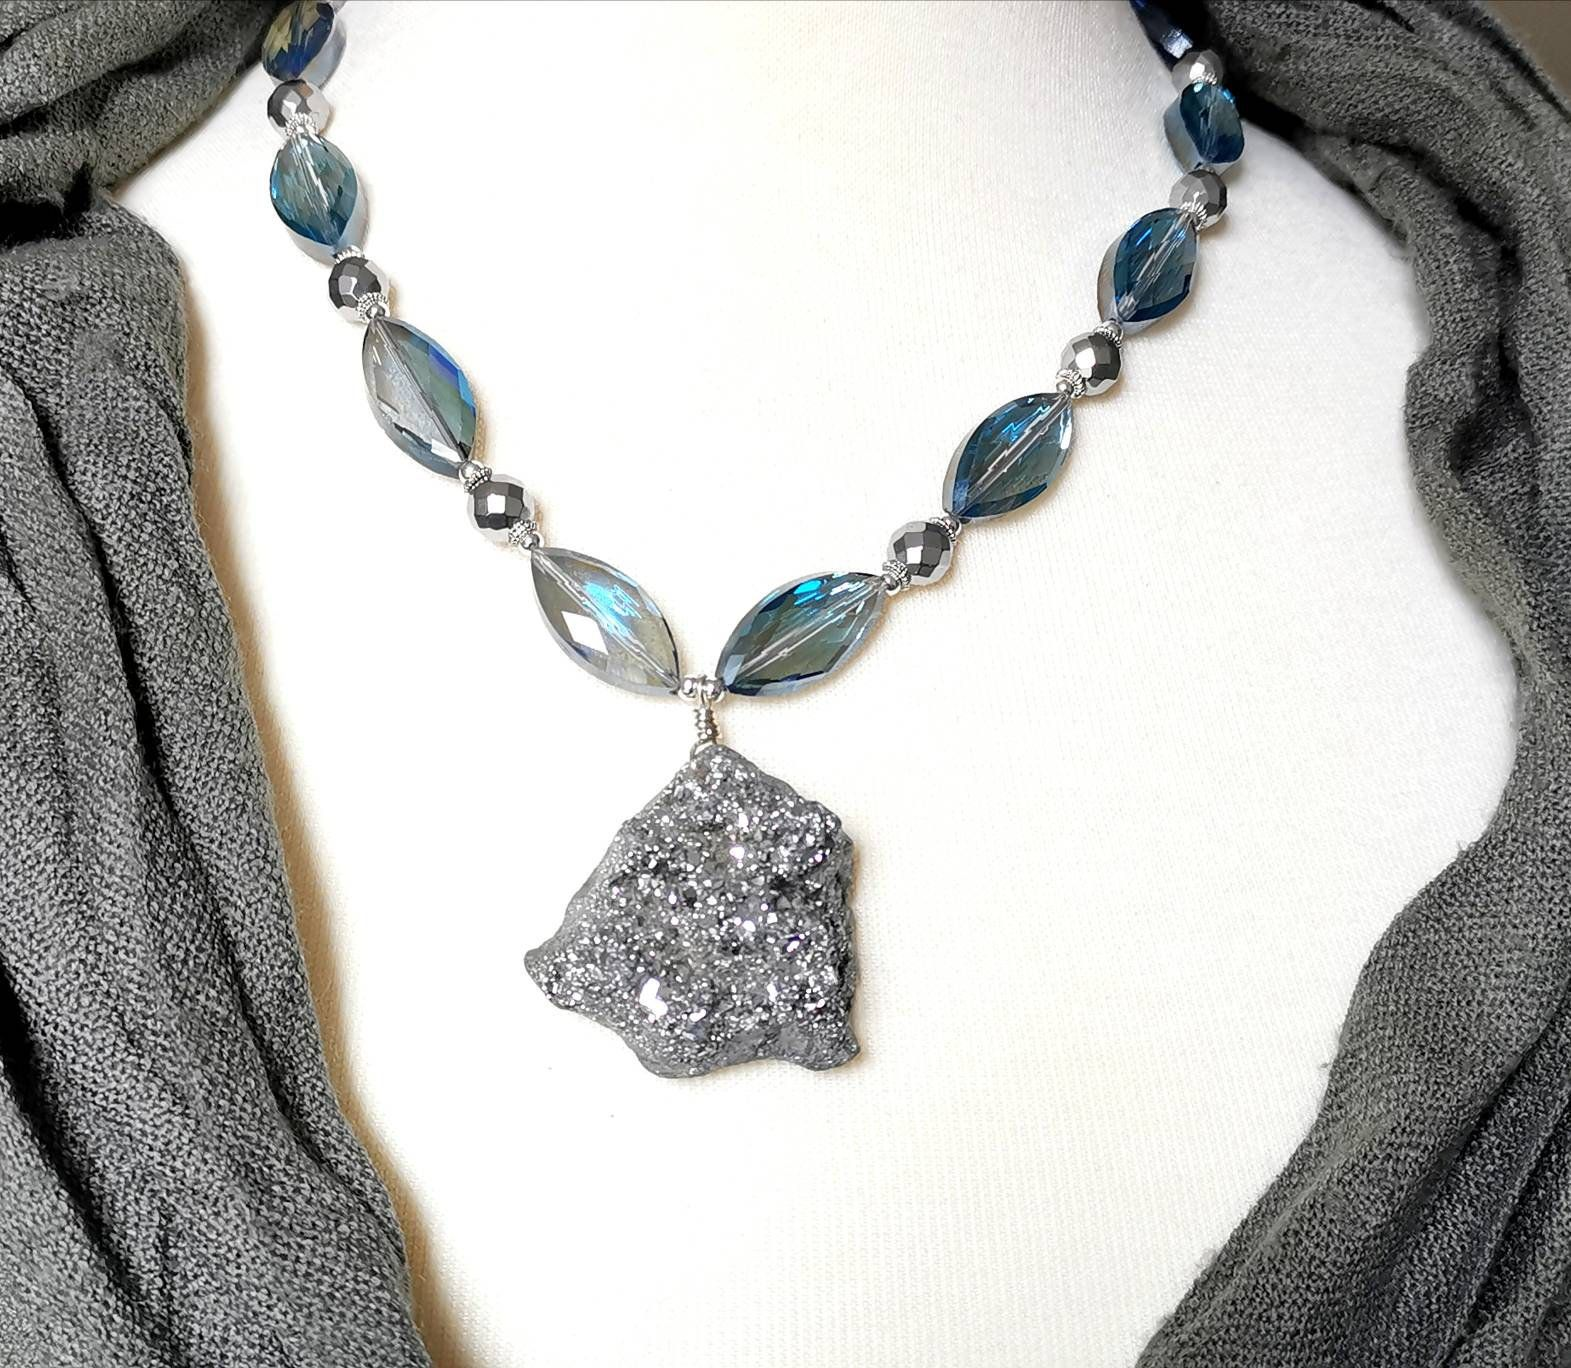 Necklace of titanium coated quartz and crystal beads with matching earrings